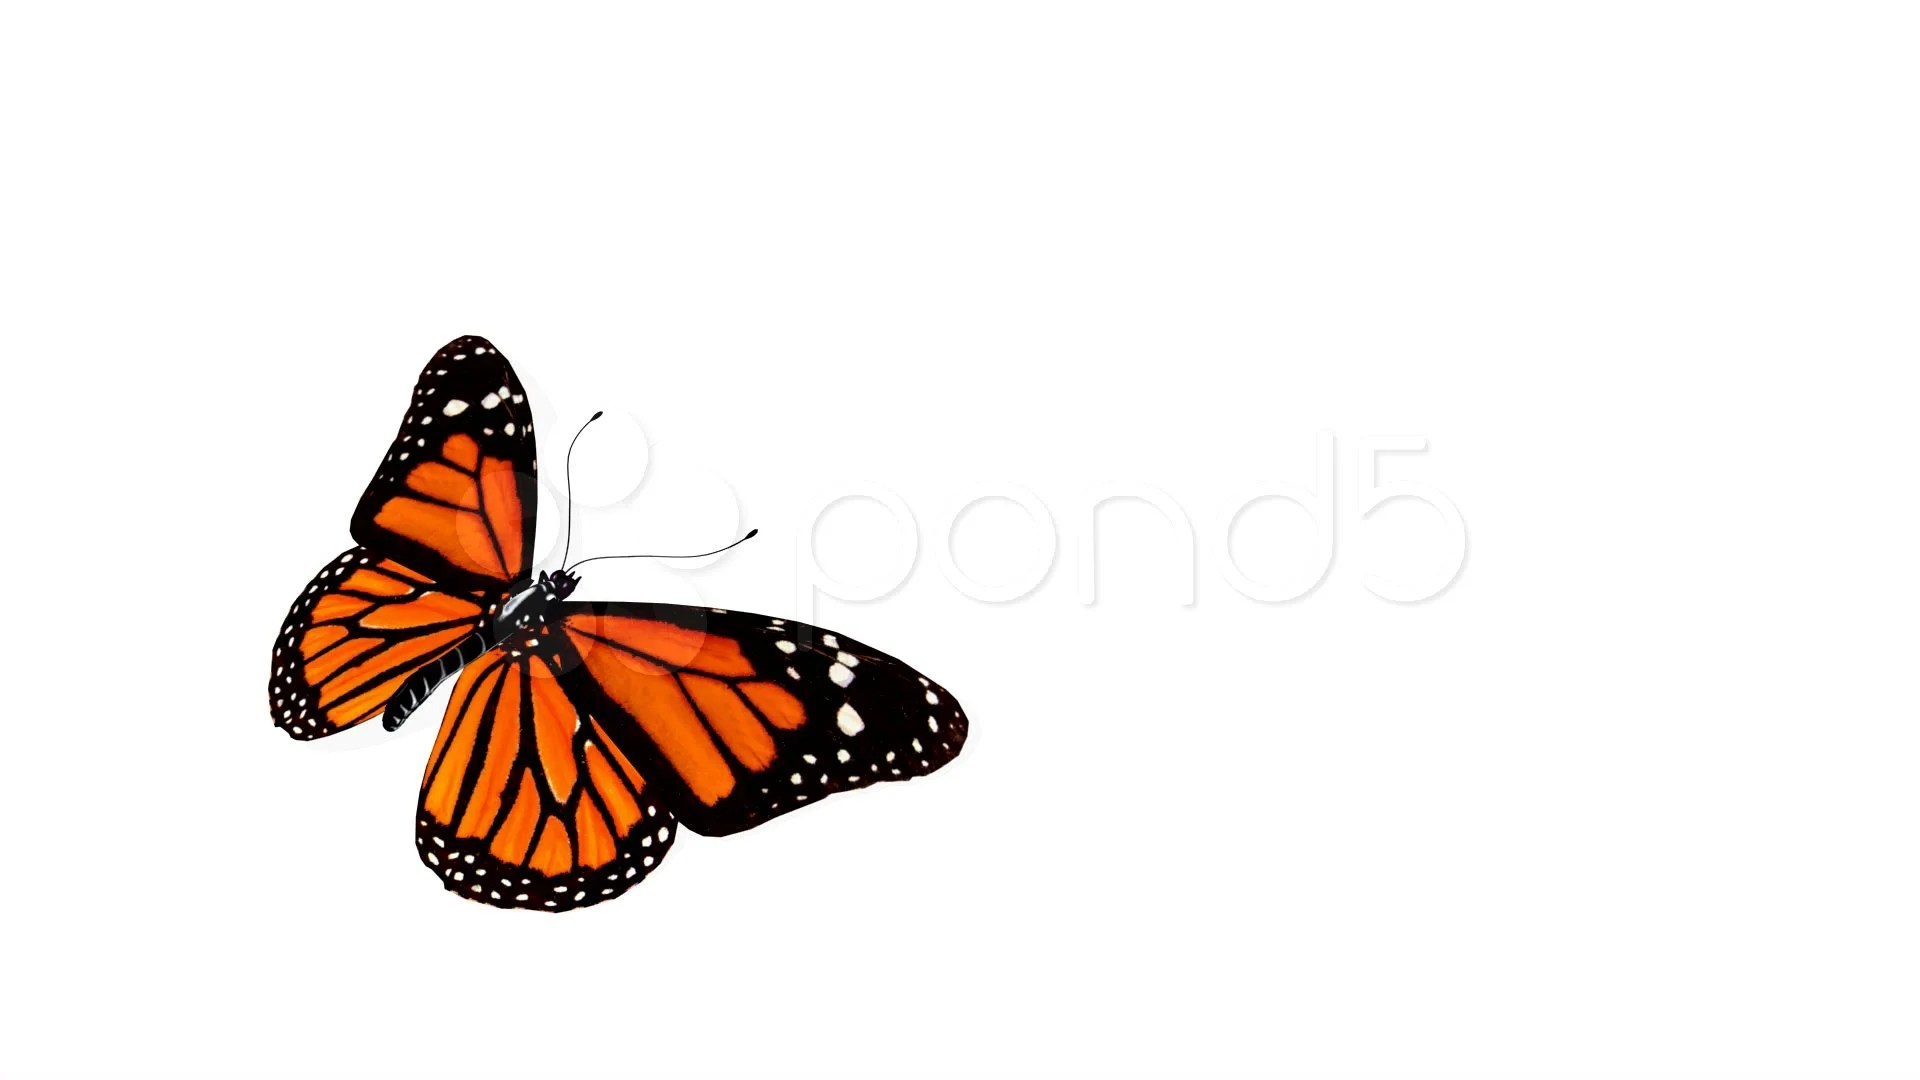 Flying Butterfly Animated Video Butterfly Animation Includes Alpha Channel